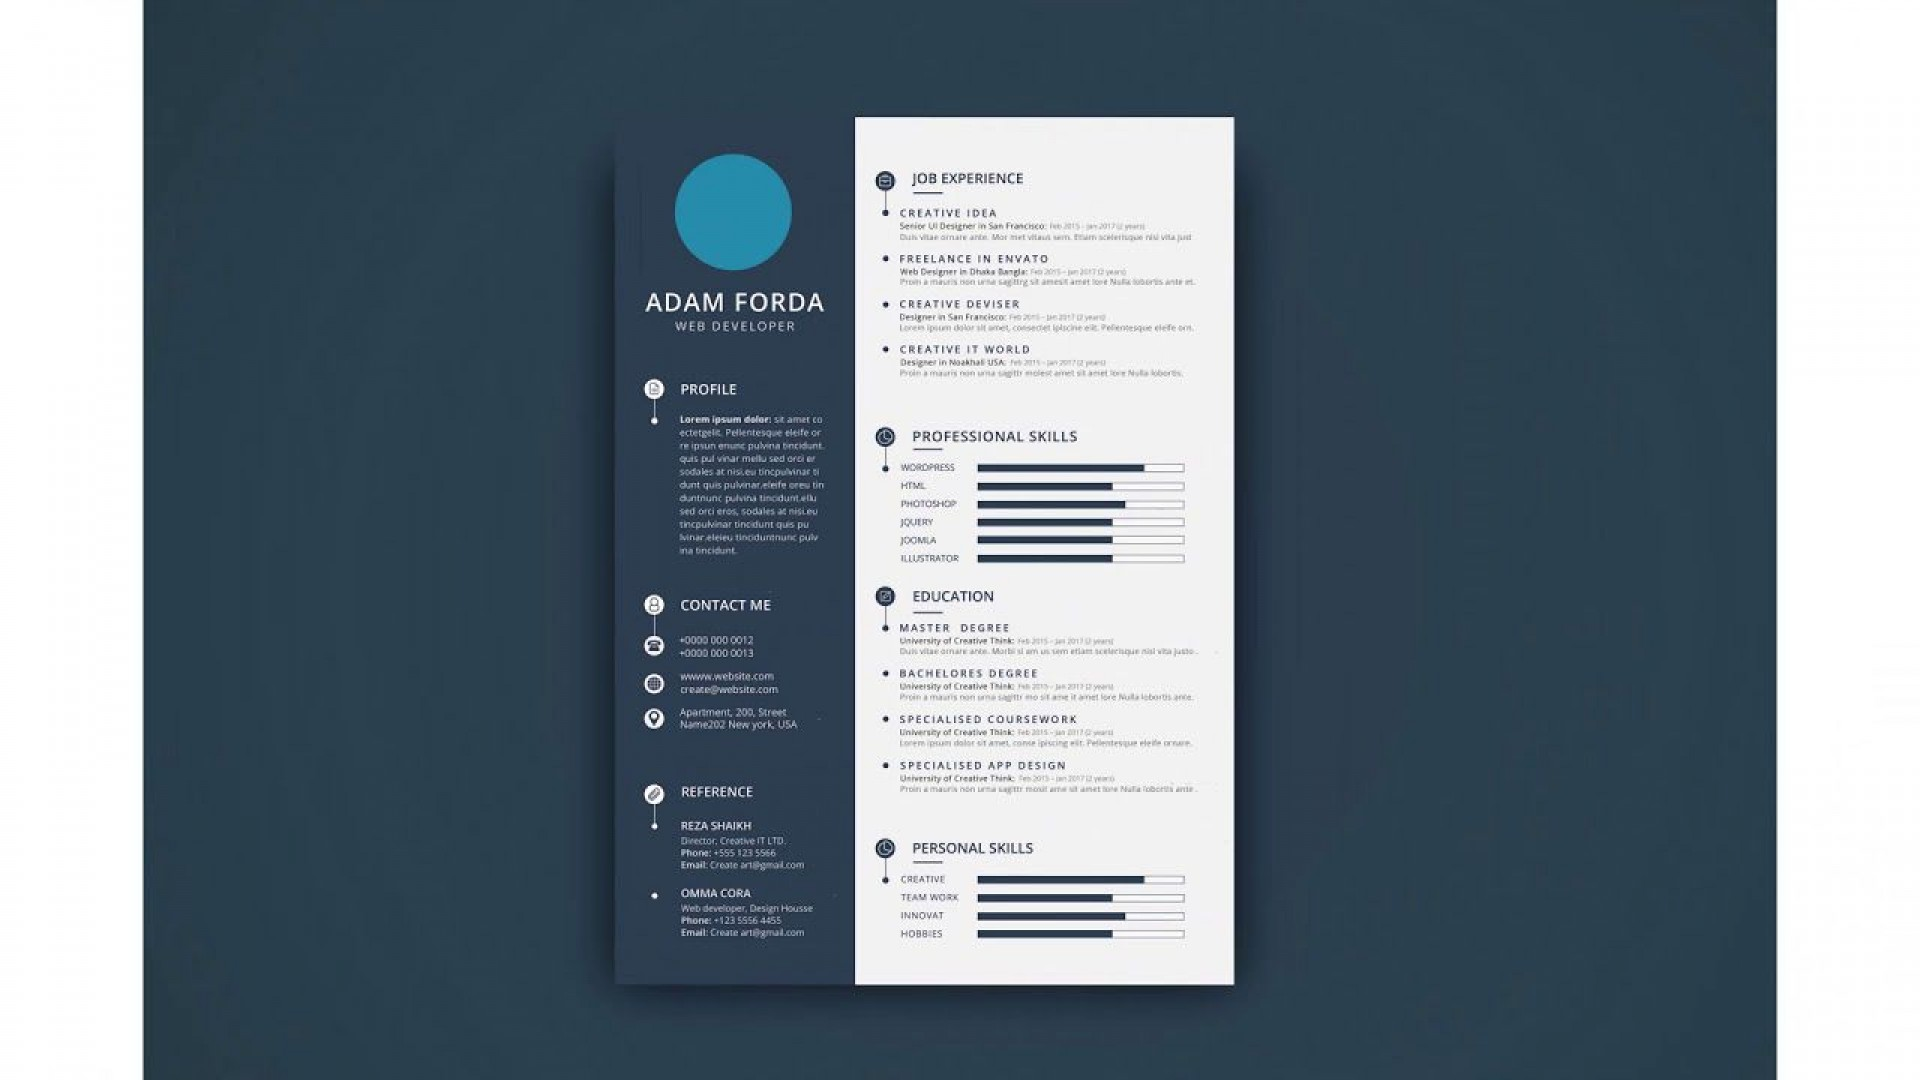 000 Astounding Photoshop Cv Template Free Download Sample  Creative Resume Psd Adobe1920